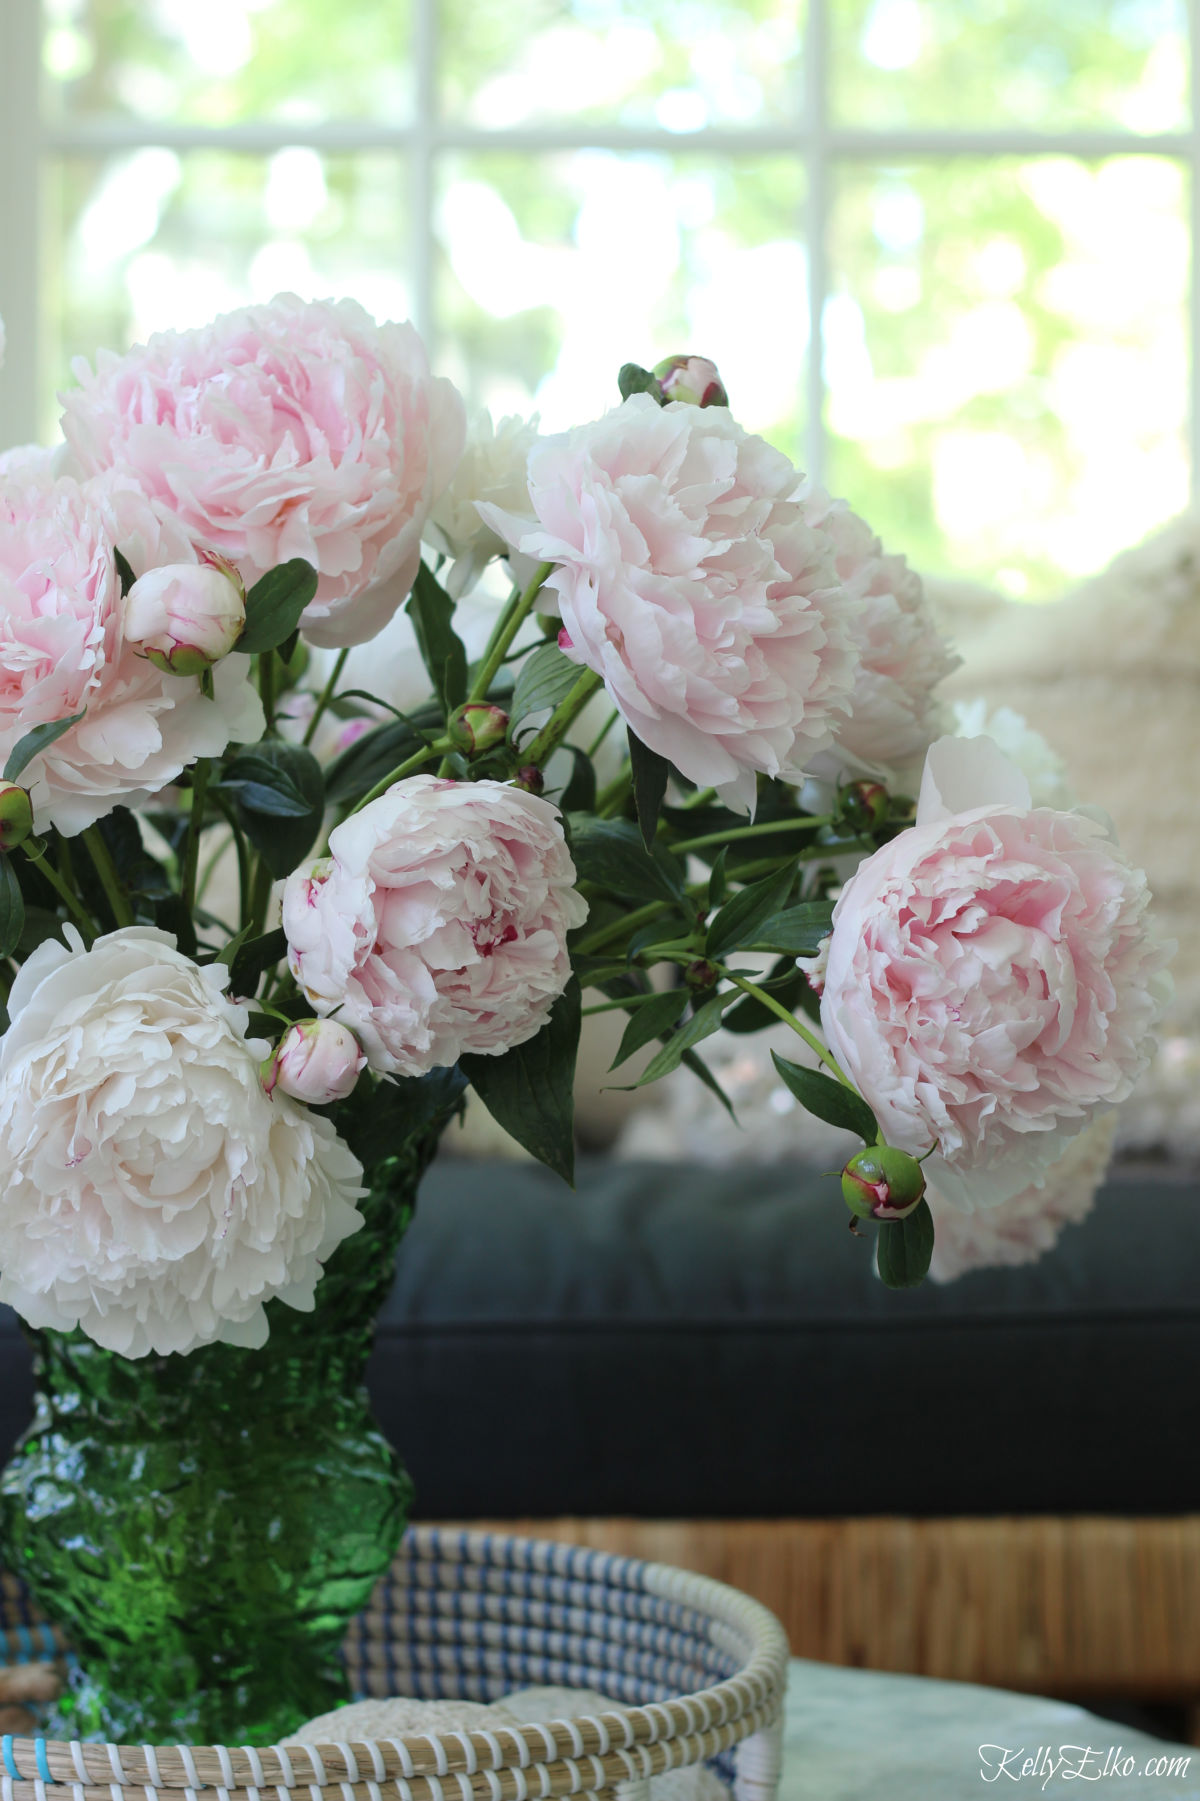 Pink peonies - so many great tips for planting, growing, cutting kellyelko.com #peonies #peony #perennials #gardener #gardeningtips